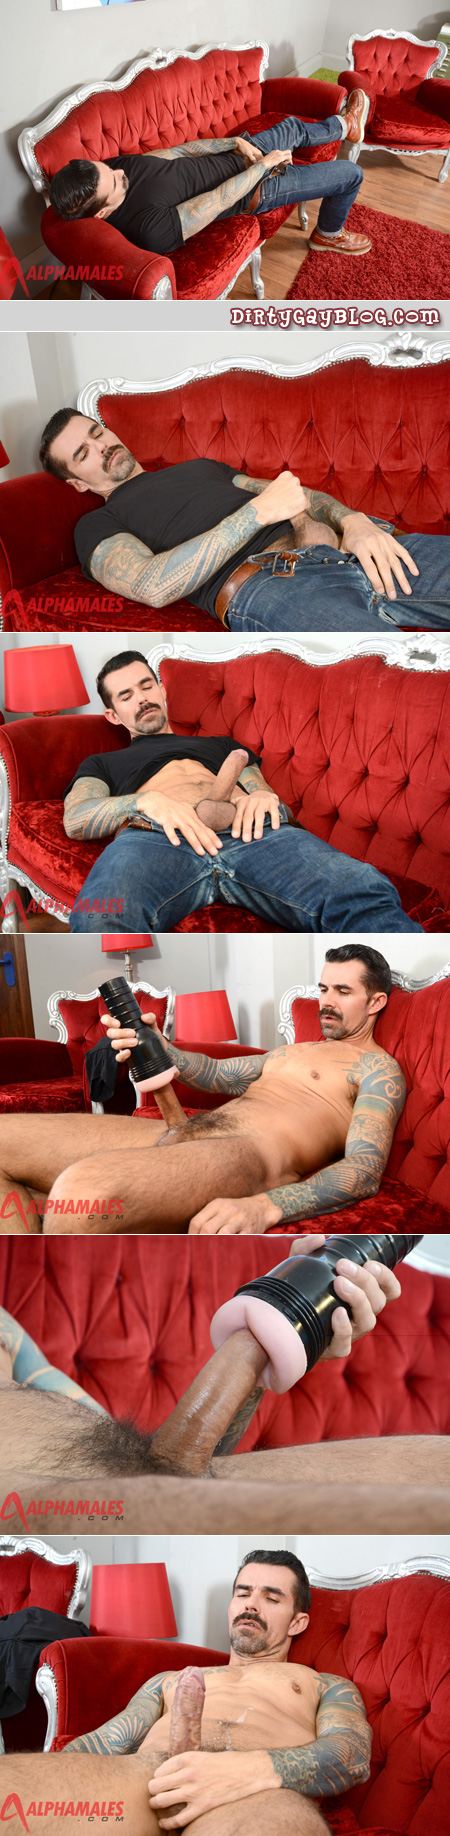 Mature man with sleeve tattoos and a thick mustache jacks his cock with a Fleshlight.